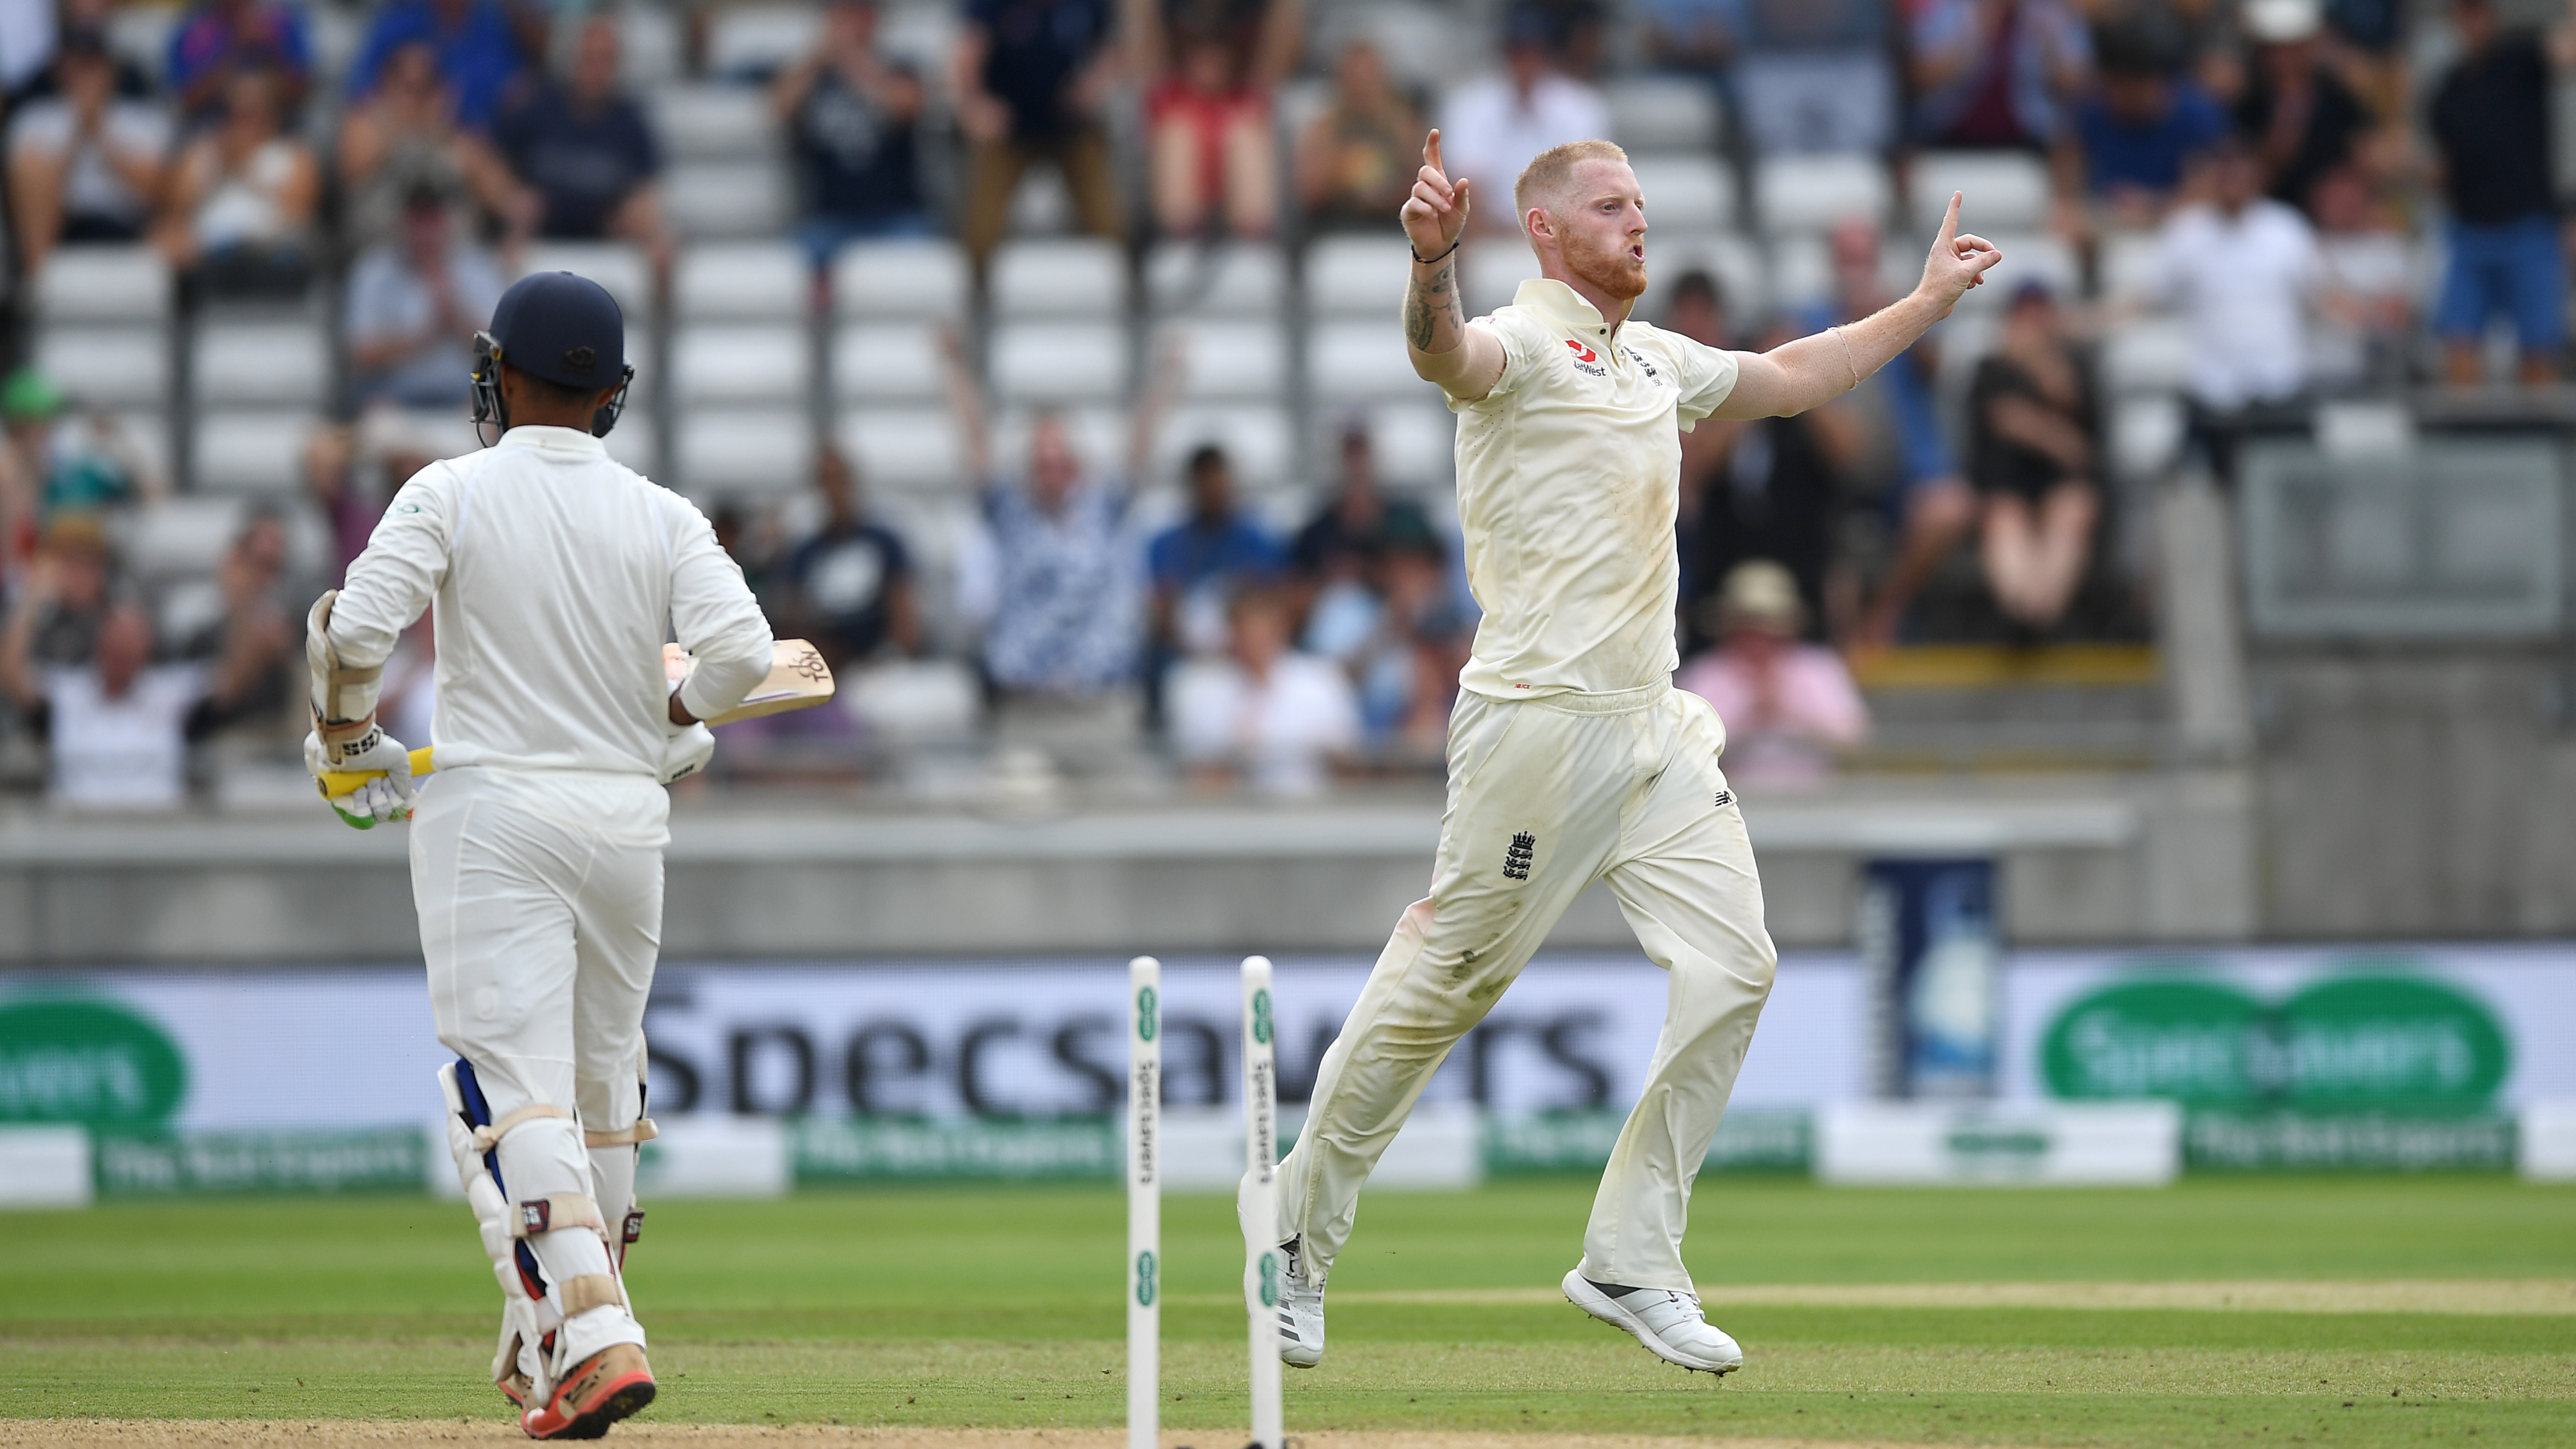 ENG vs IND 2018: England considering options to have Ben Stokes available for the second Test